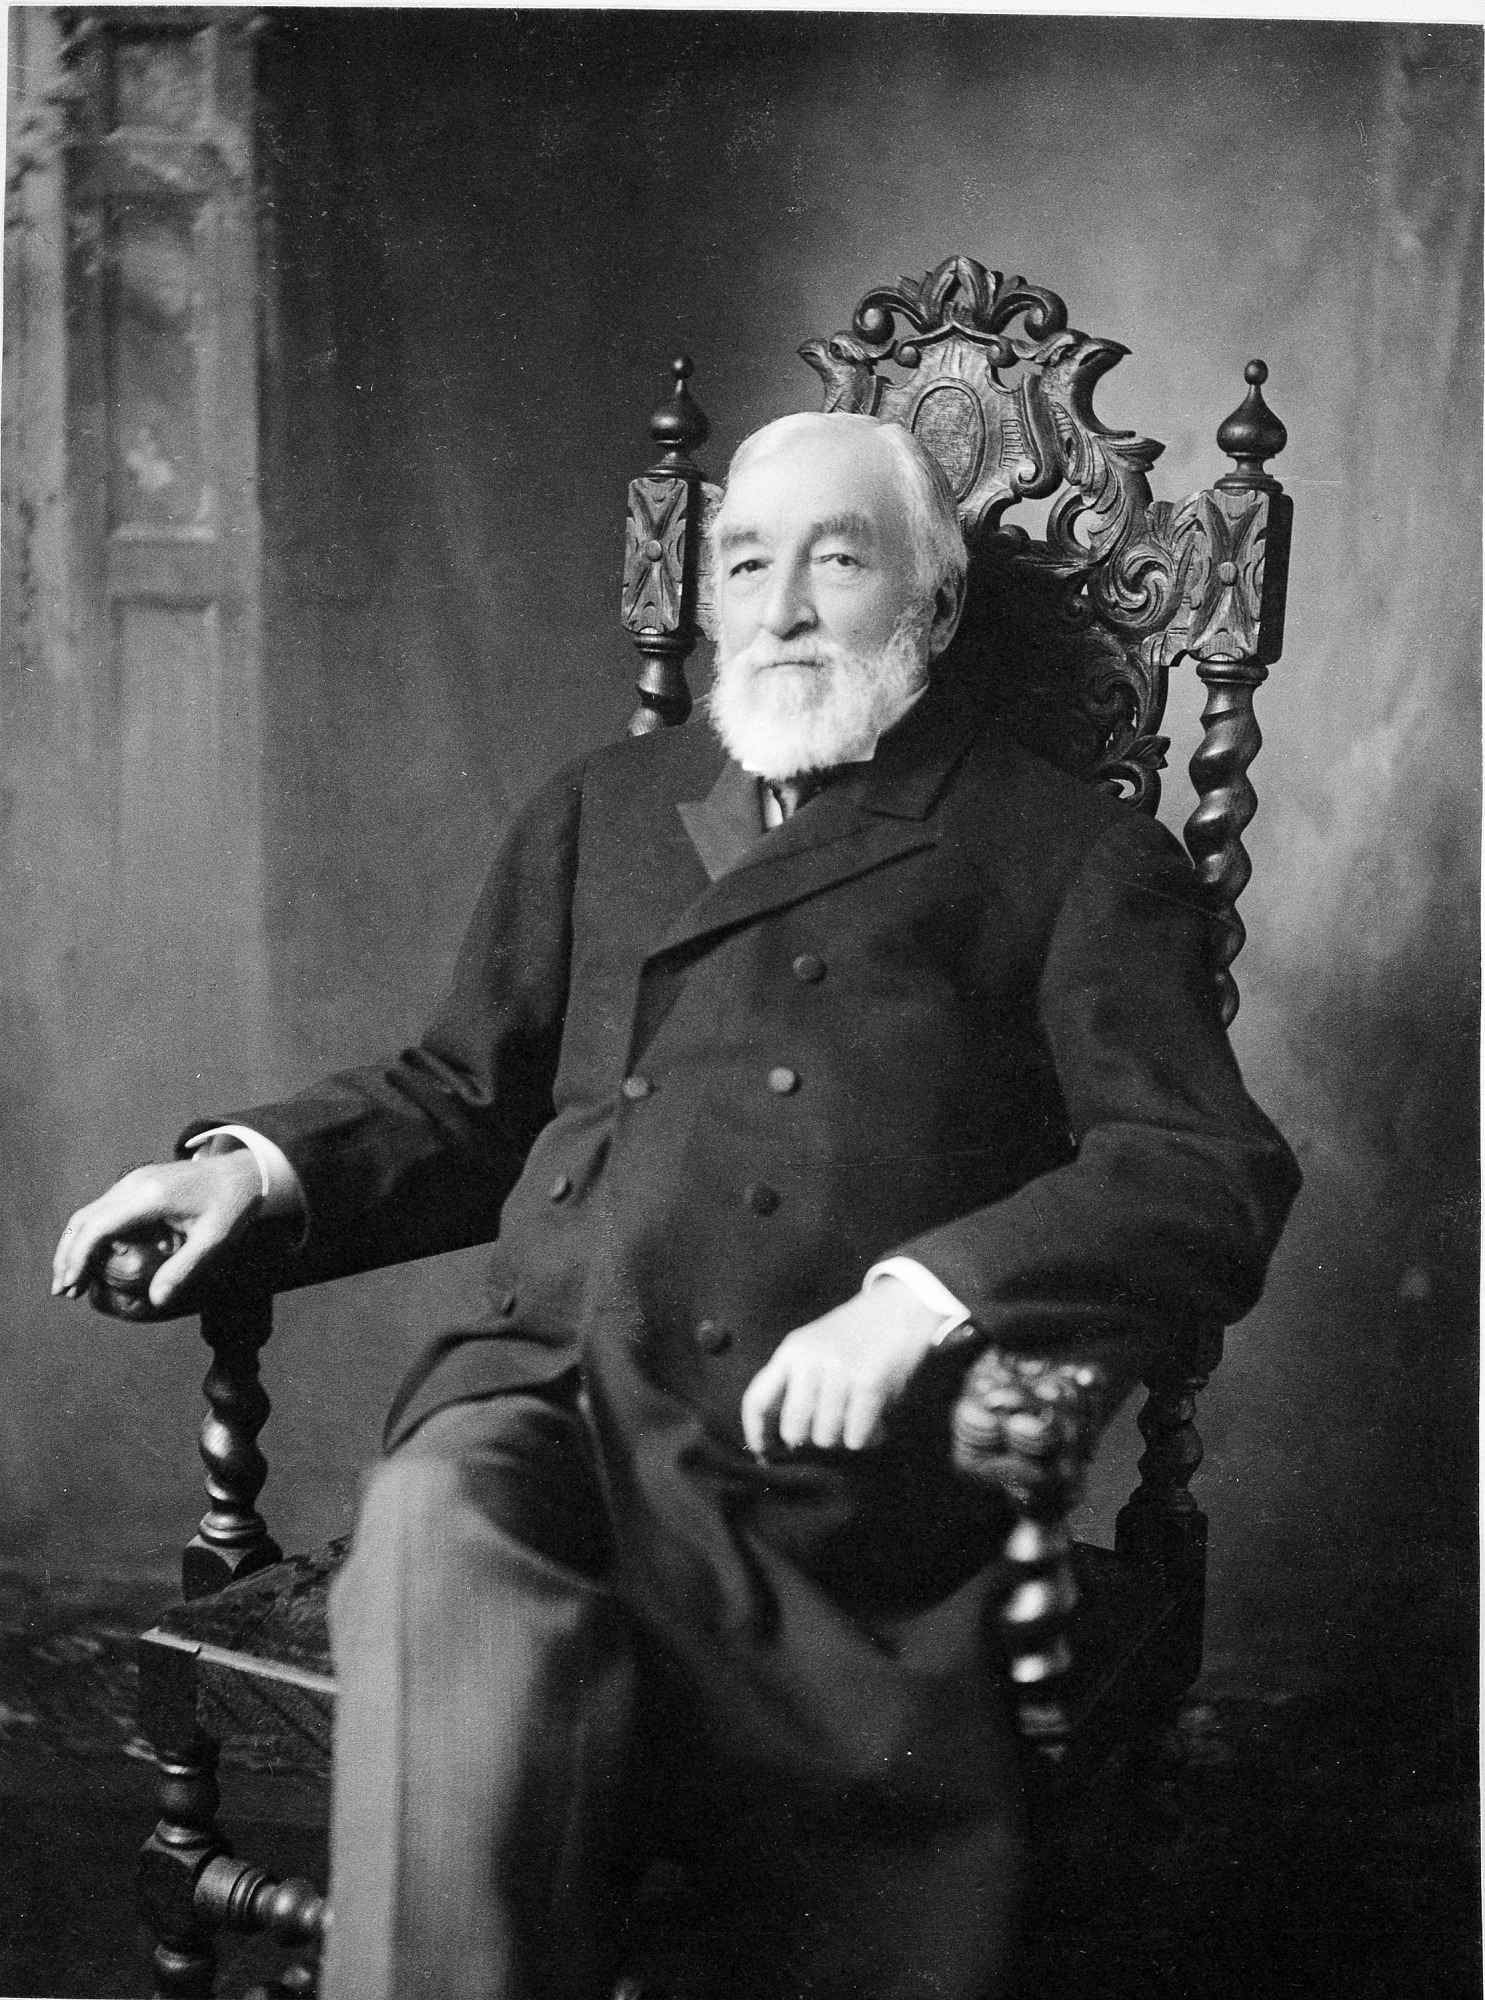 Samuel Pierpont Langley, 1834-1906